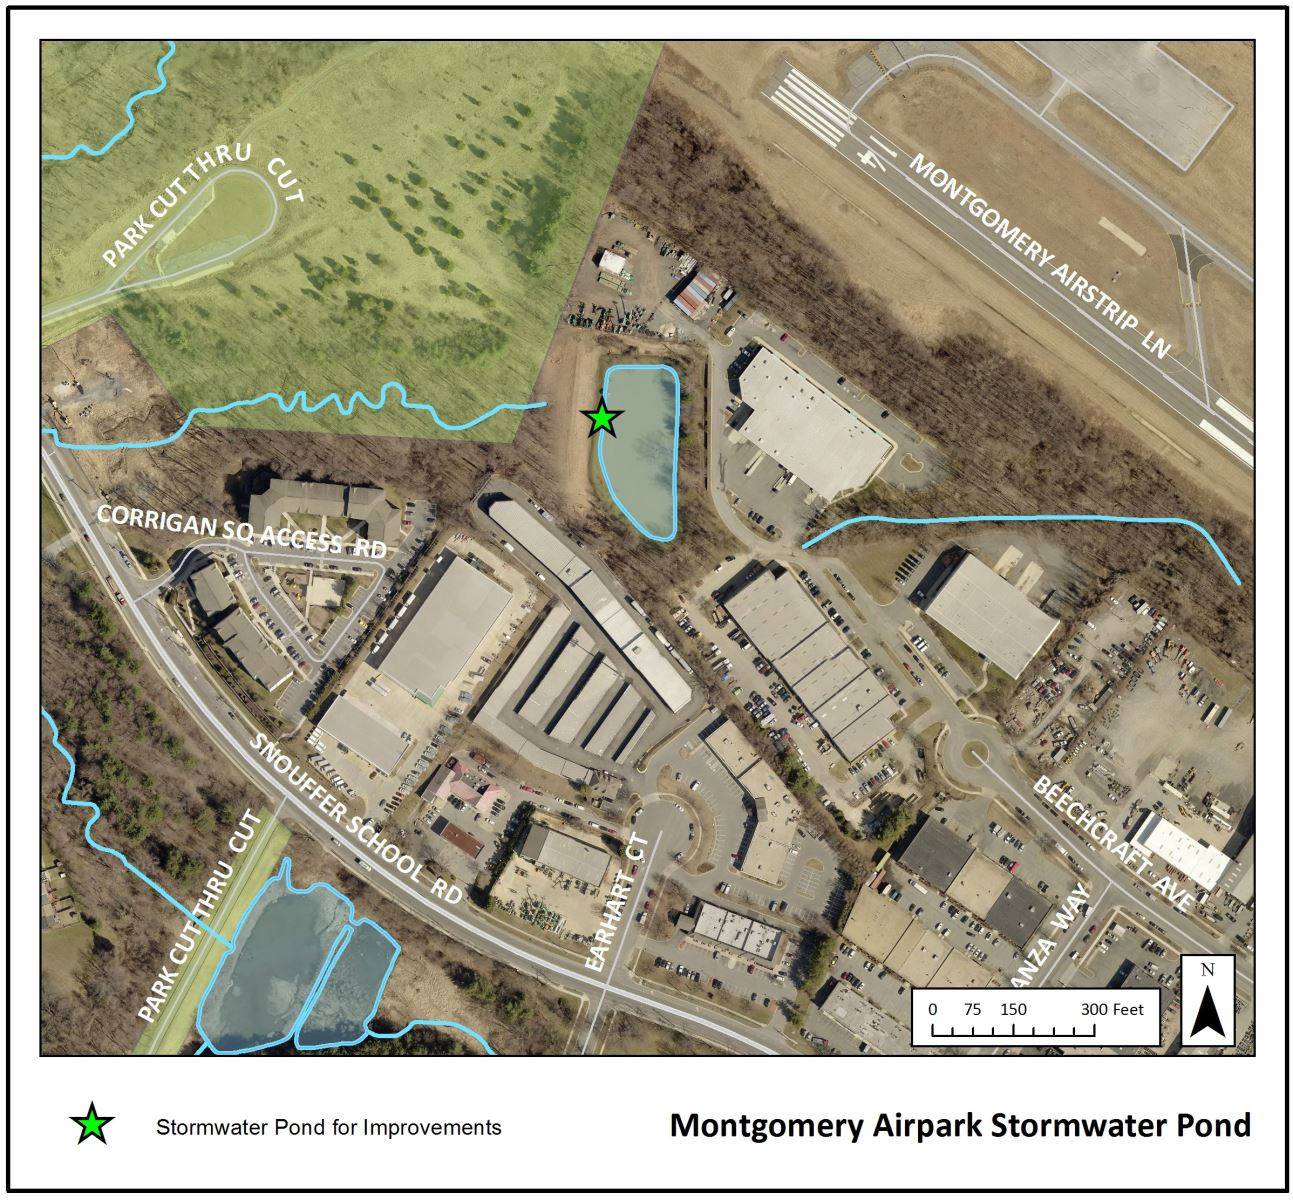 Montgomery Airpark Stormwater Pond